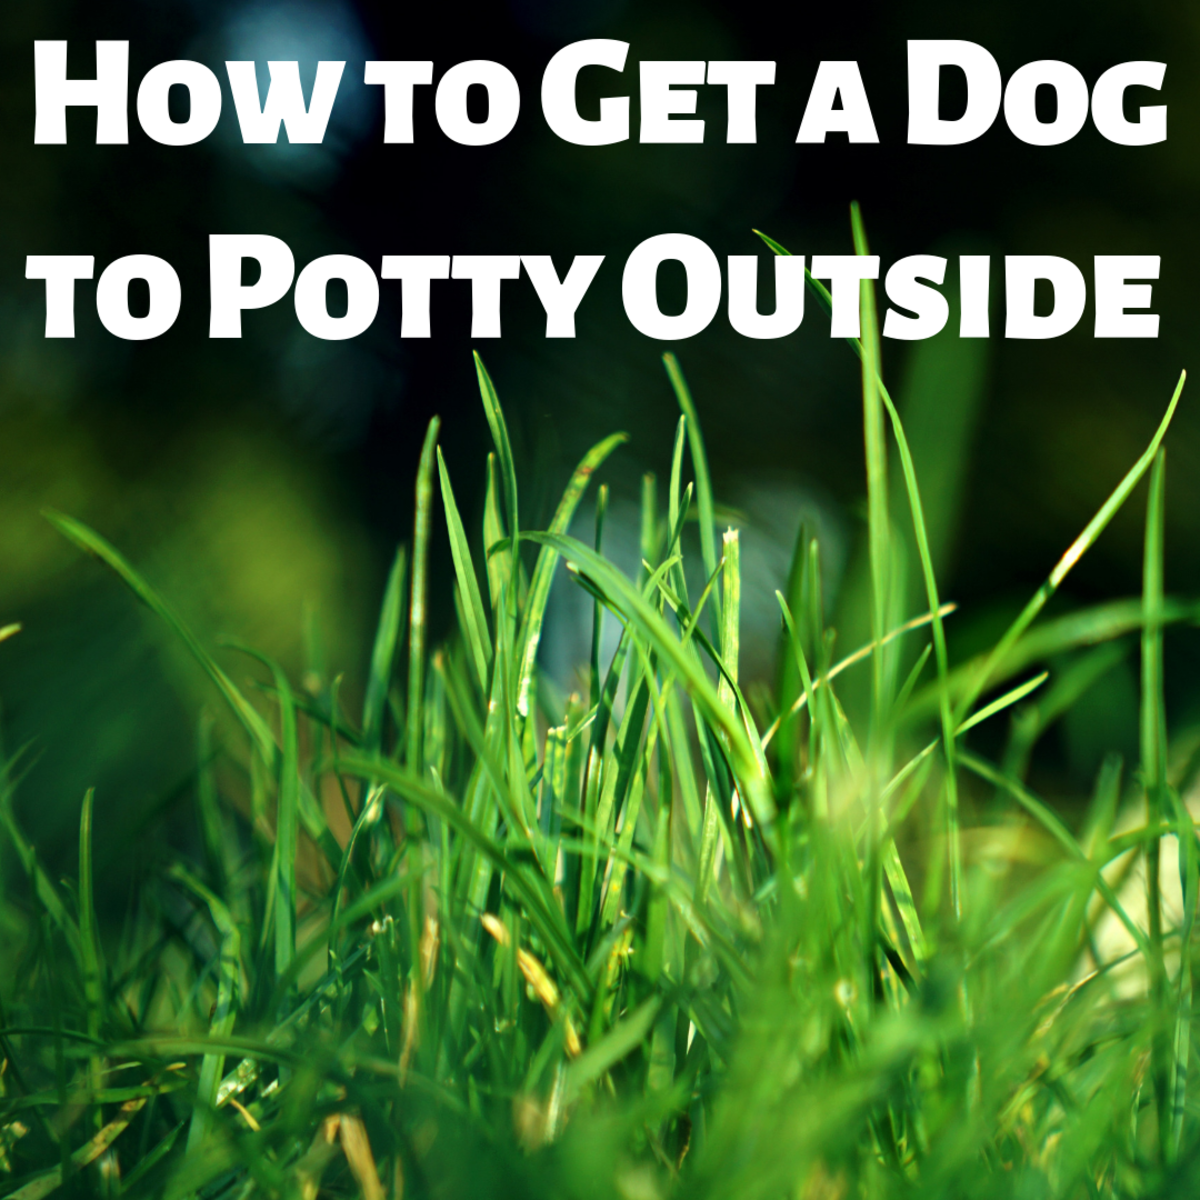 How to Wean a Dog Off Training Pads and Get Them to Potty Outside